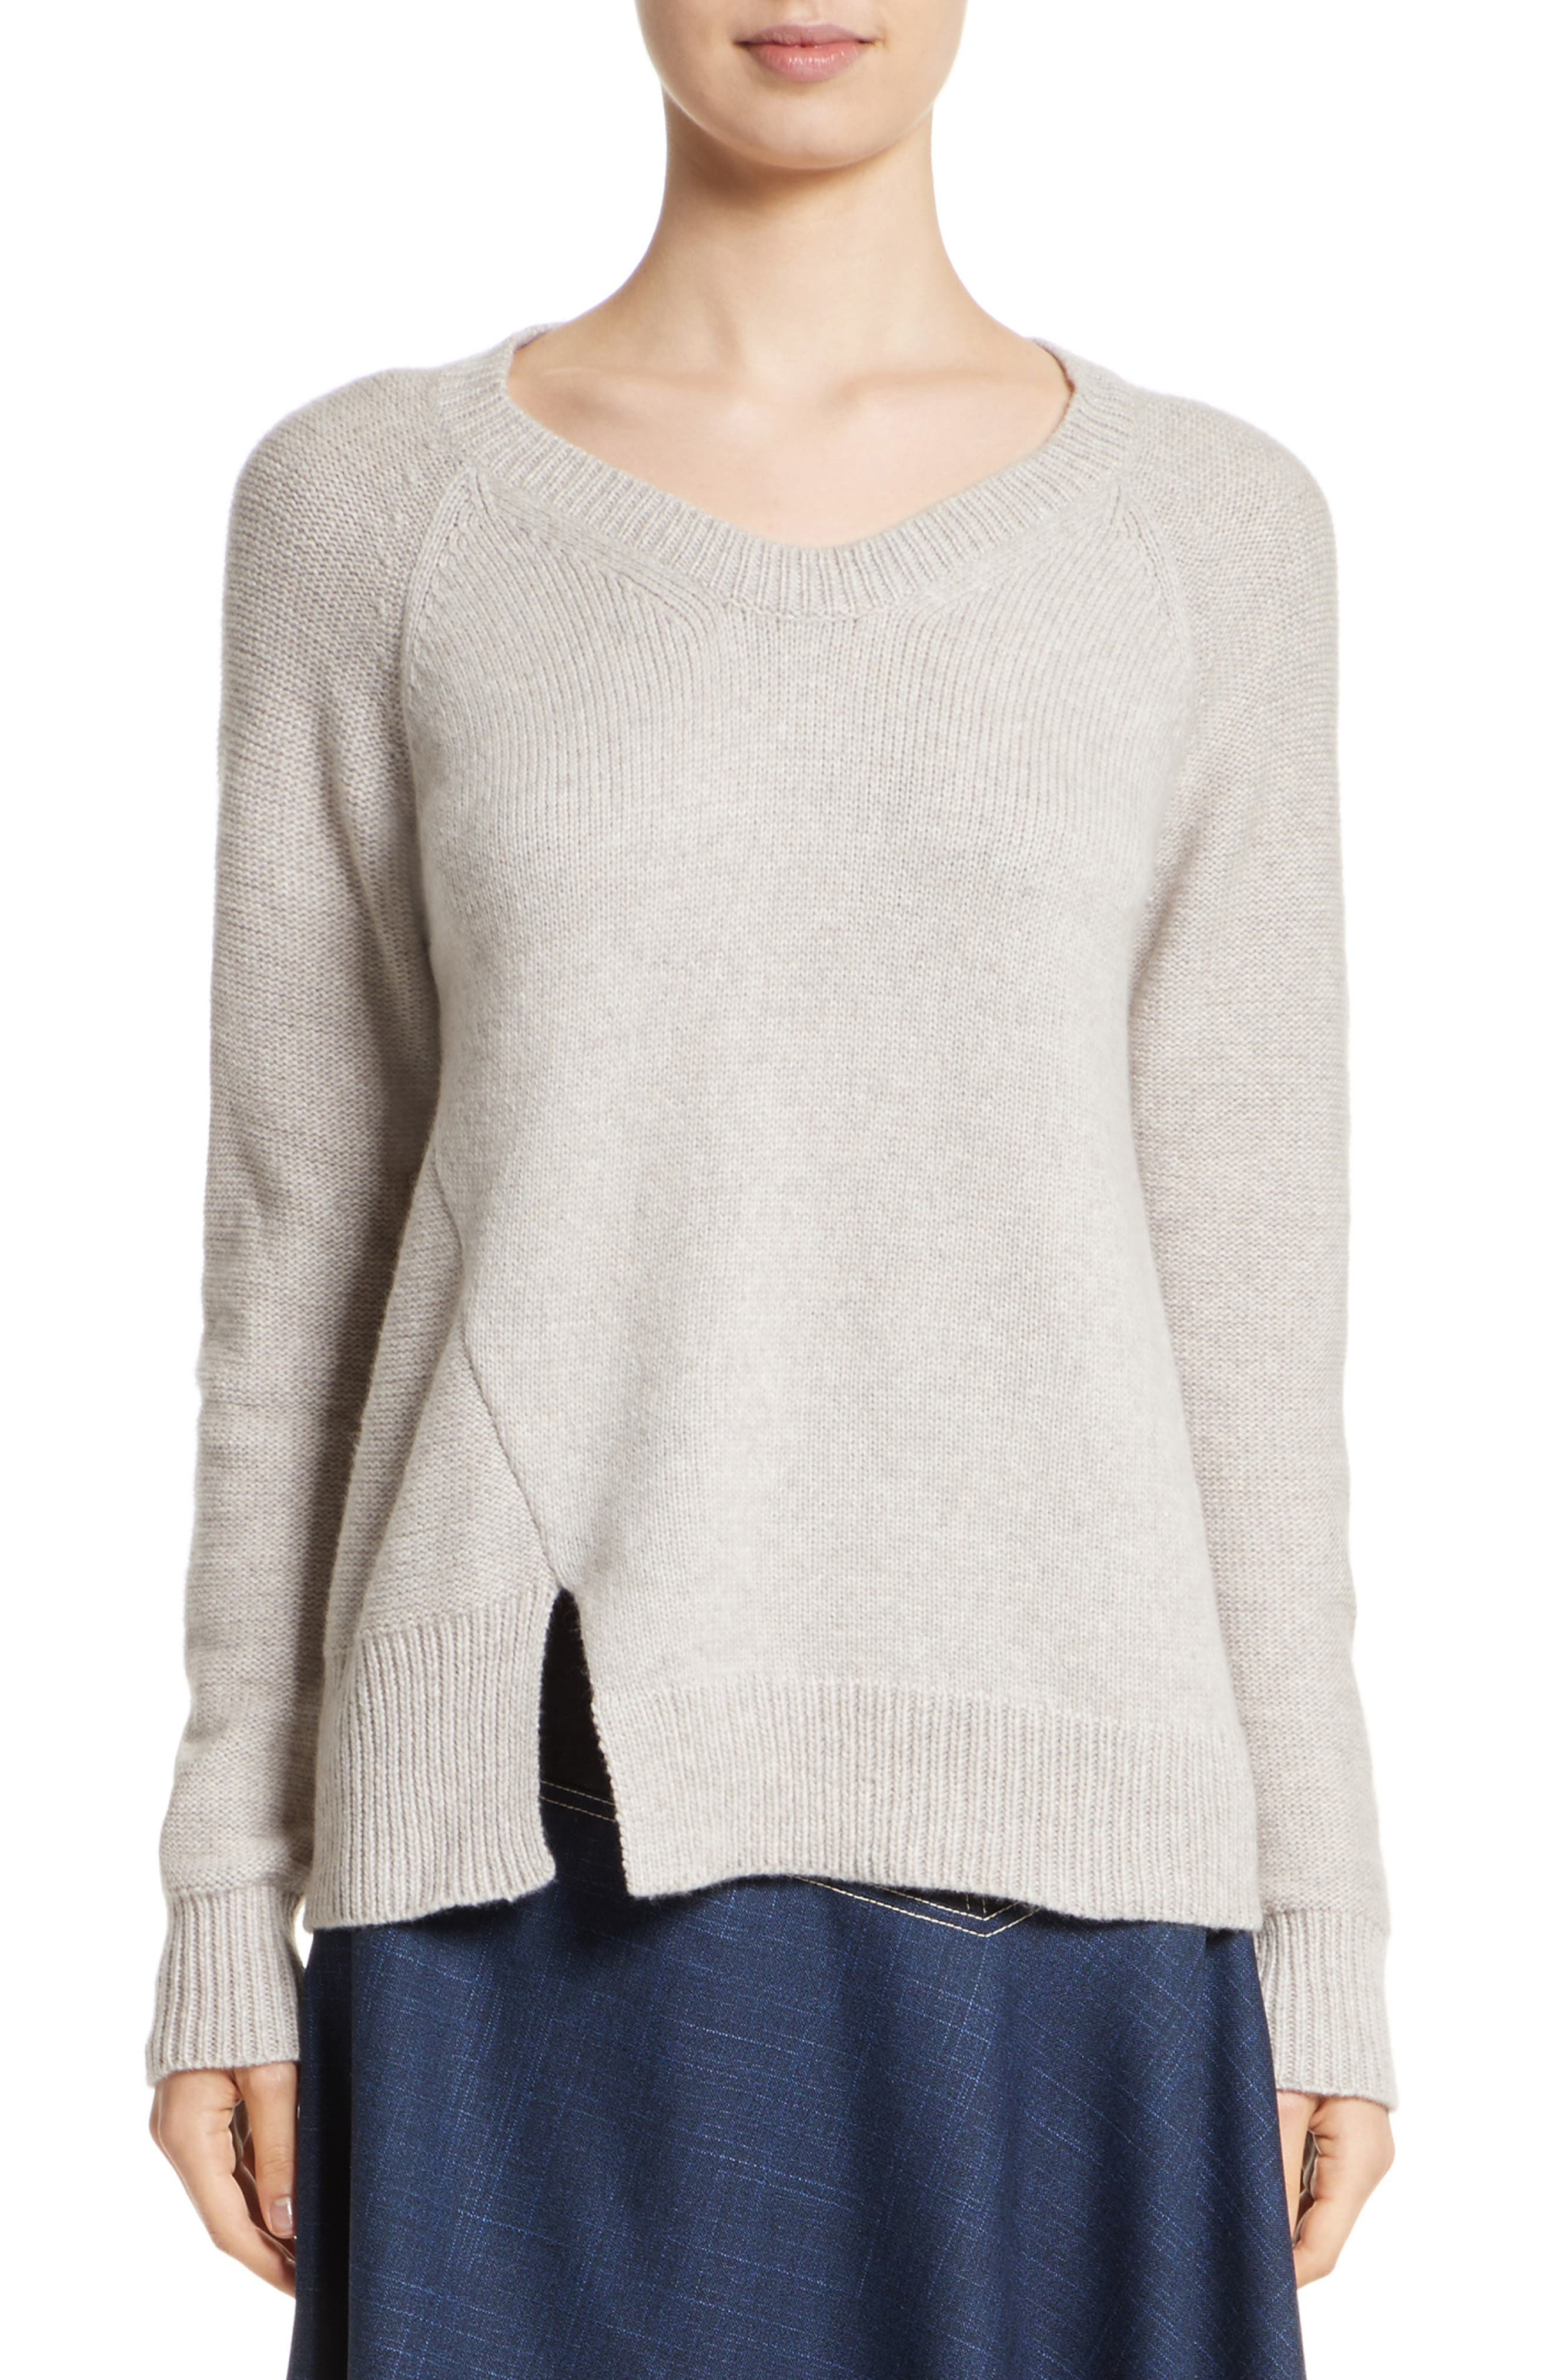 Alternate Image 1 Selected - Colovos Asymmetrical Wide Neck Sweater